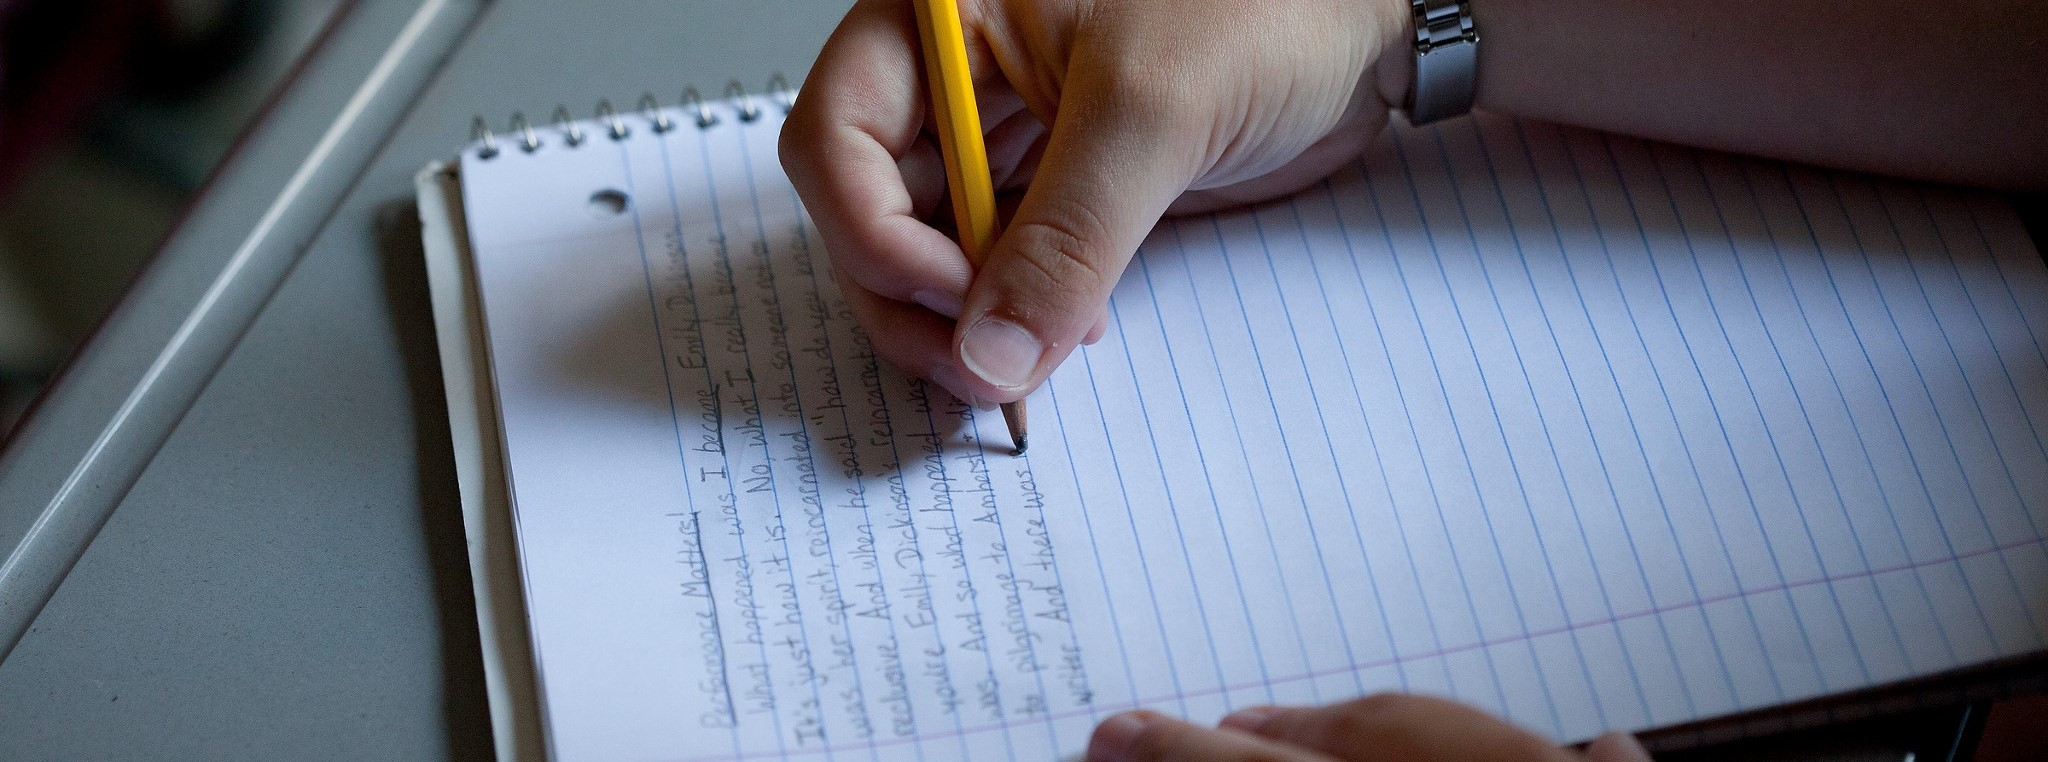 A young student's hand holding a pencil writing in a white notebook.